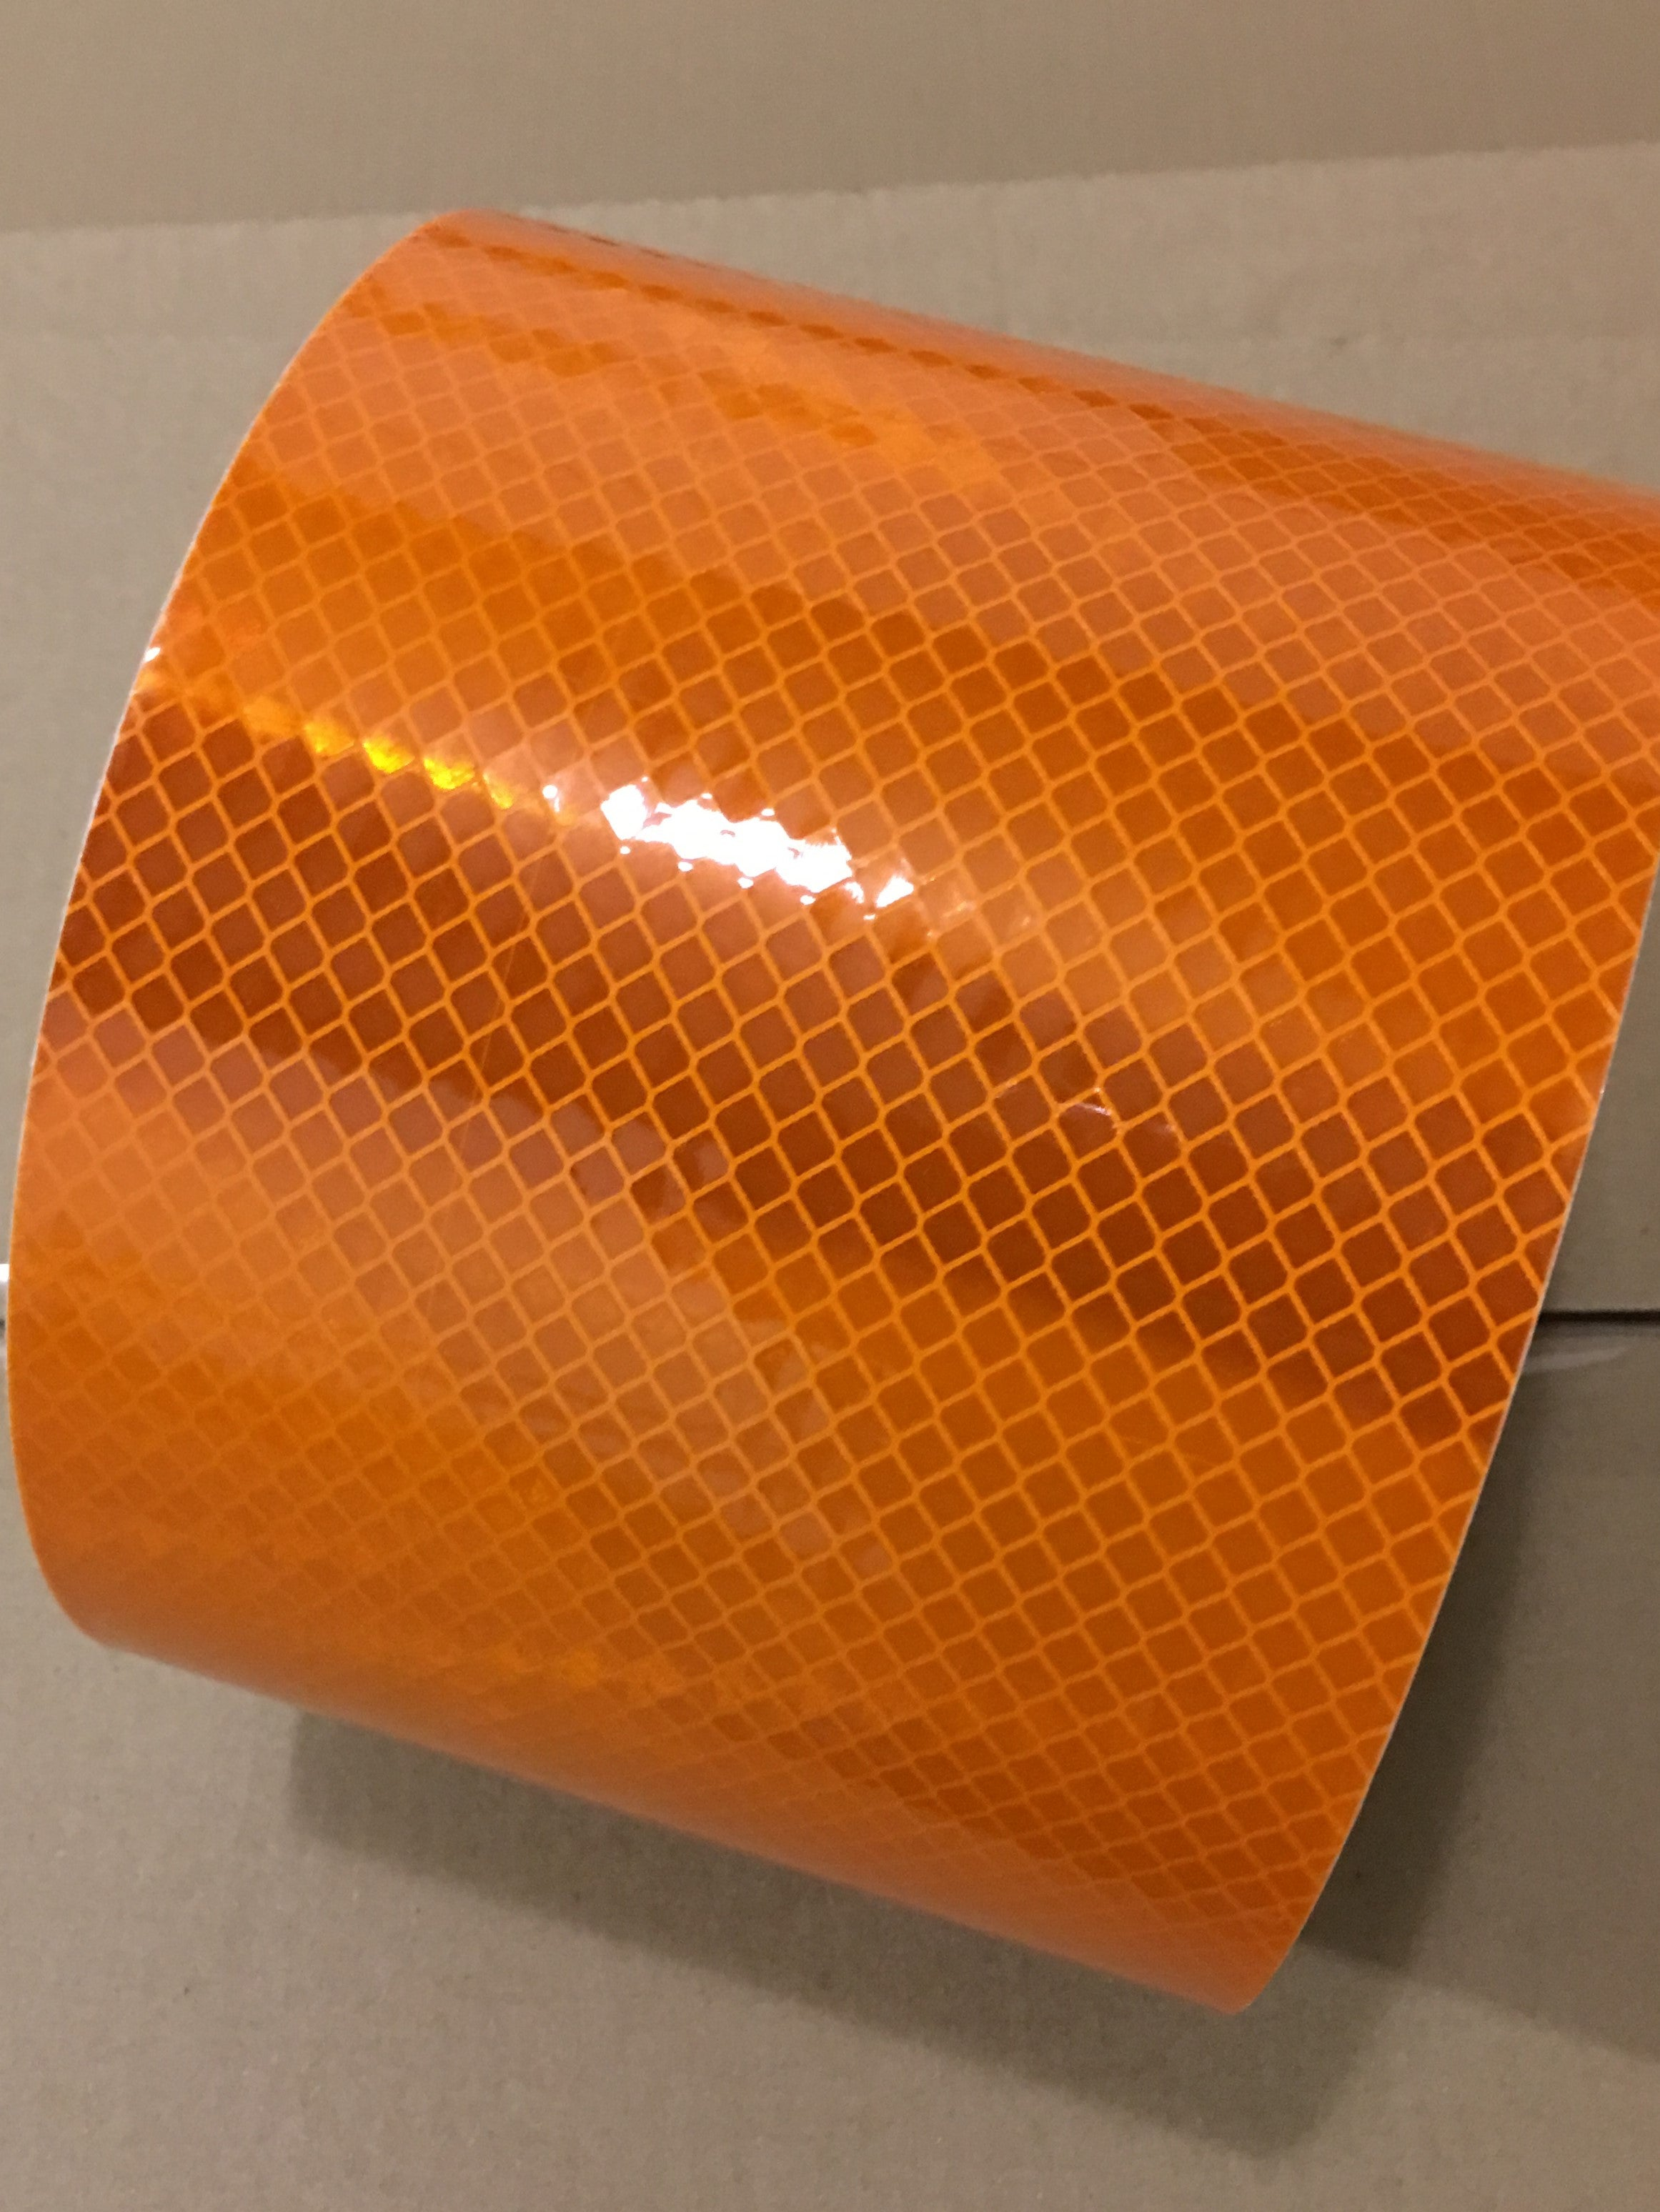 "6"" x 10' Roll 3M Diamond Grade Highly Reflective Safety Tape Flexible Prismatic Markings 973 Series Orange"